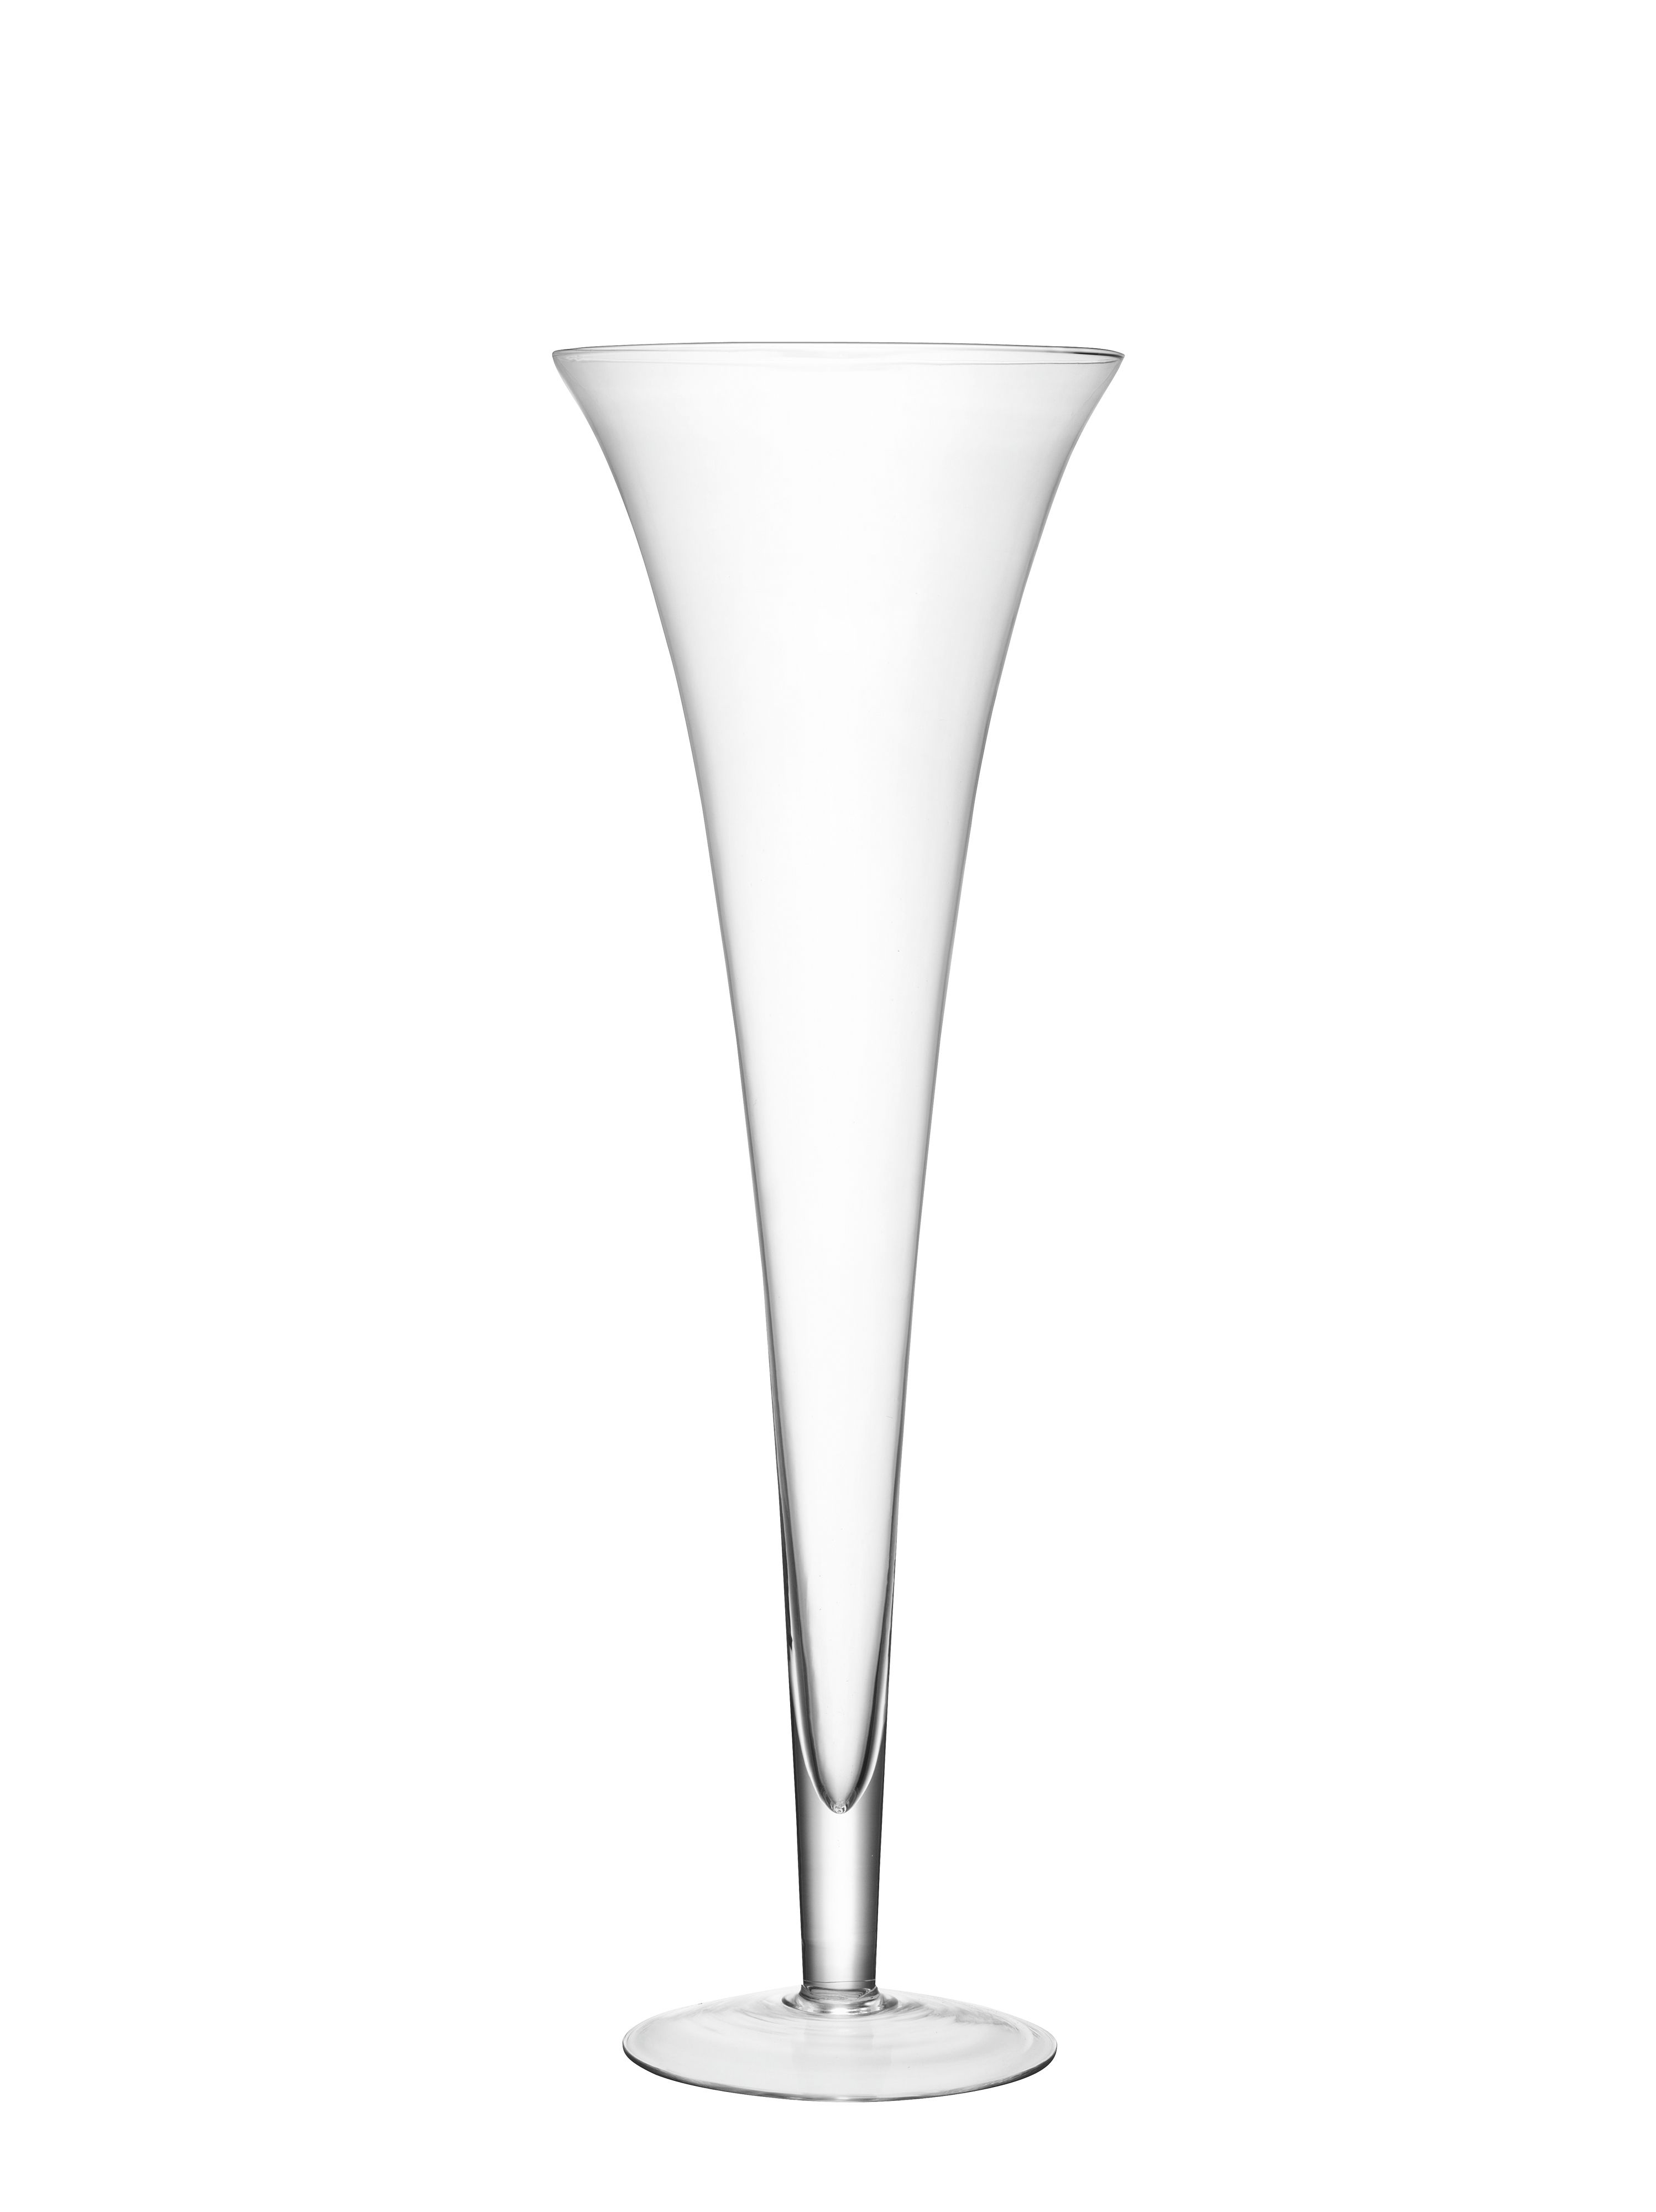 Maxa giant champagne glass